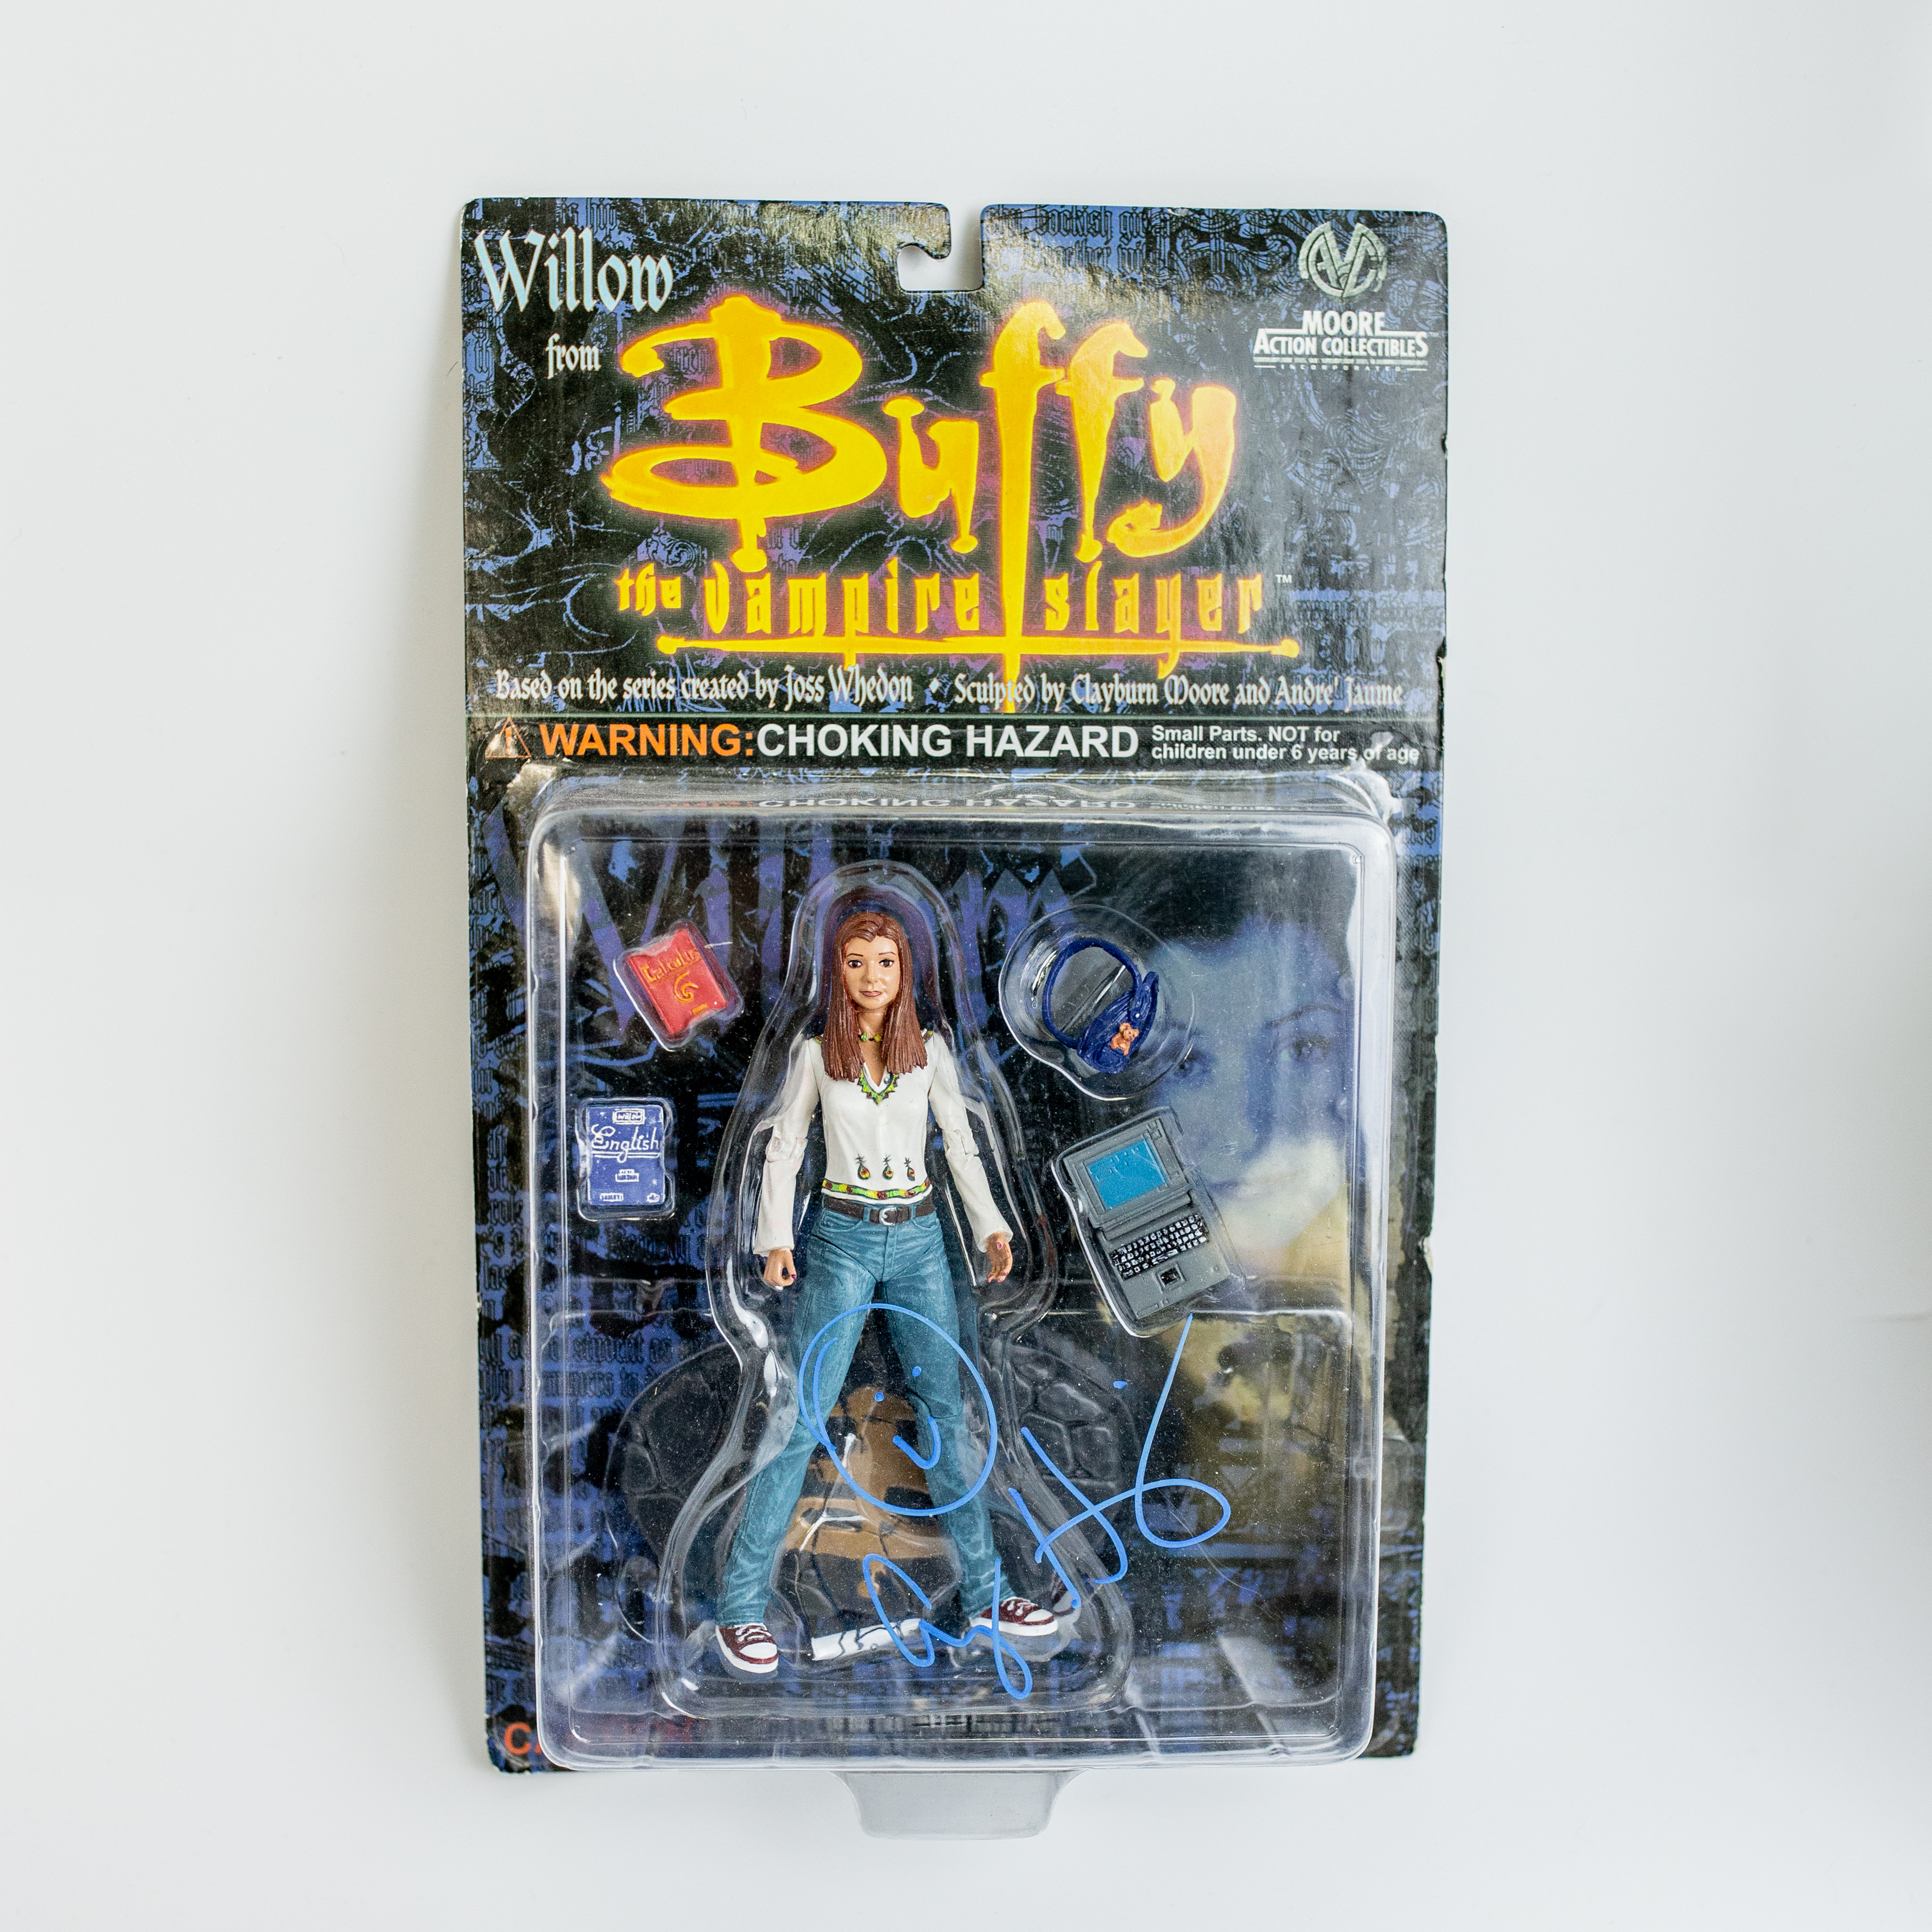 Alyson Hannigan Original Autogramm auf Buffy Figur - Willow from Buffy the Vampire Slayer